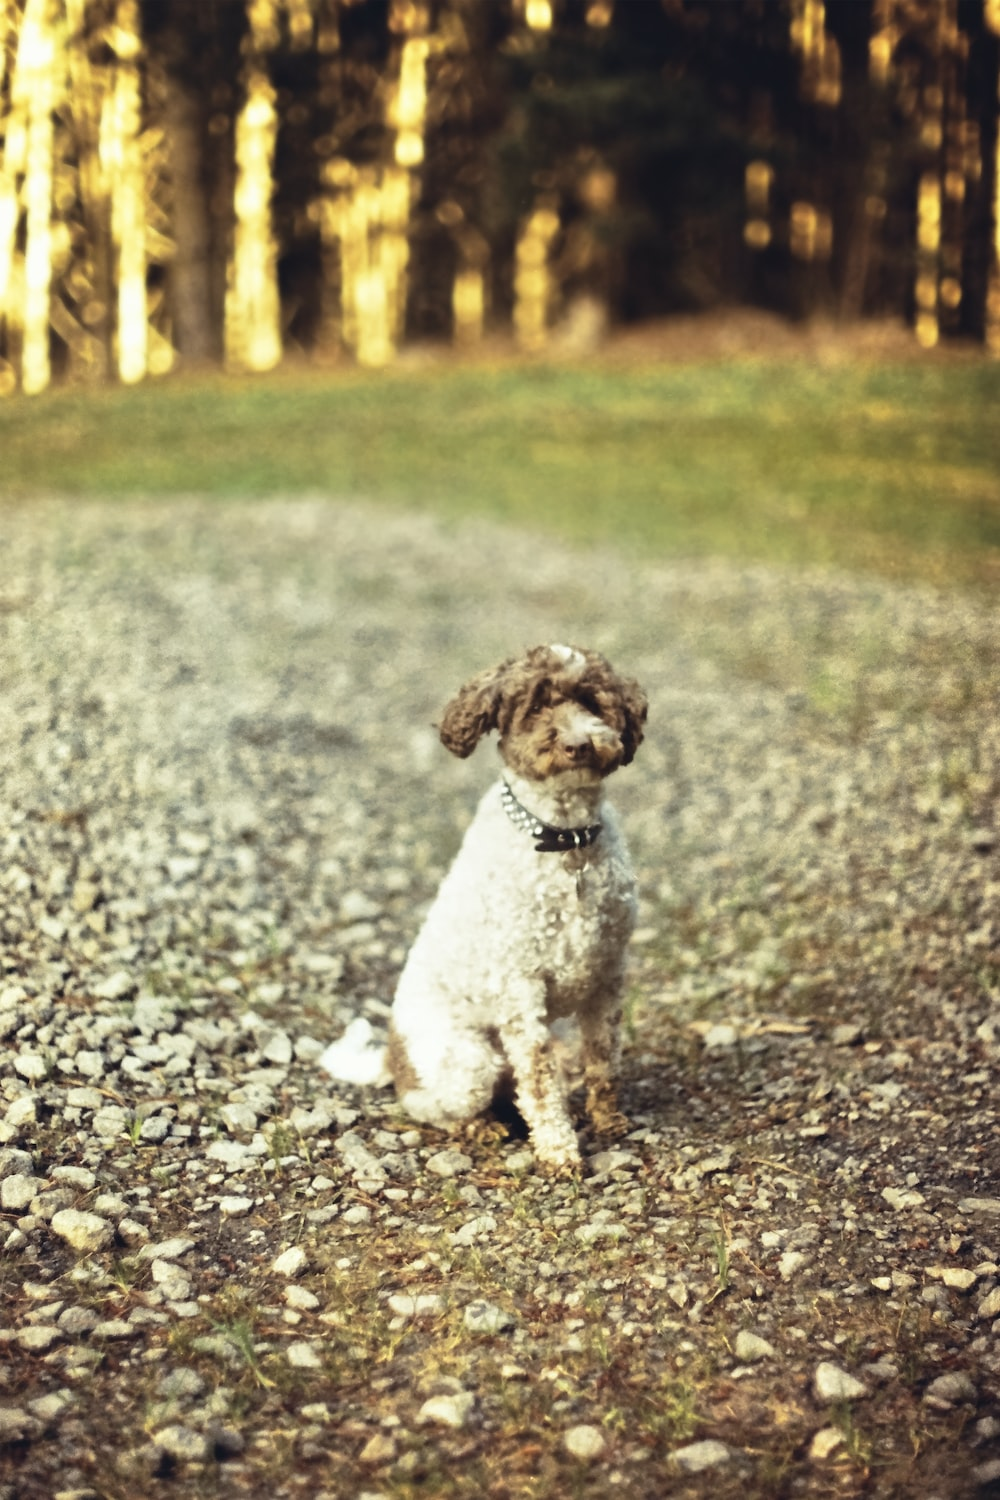 white and brown short coated small dog on gray and white rocky road during daytime